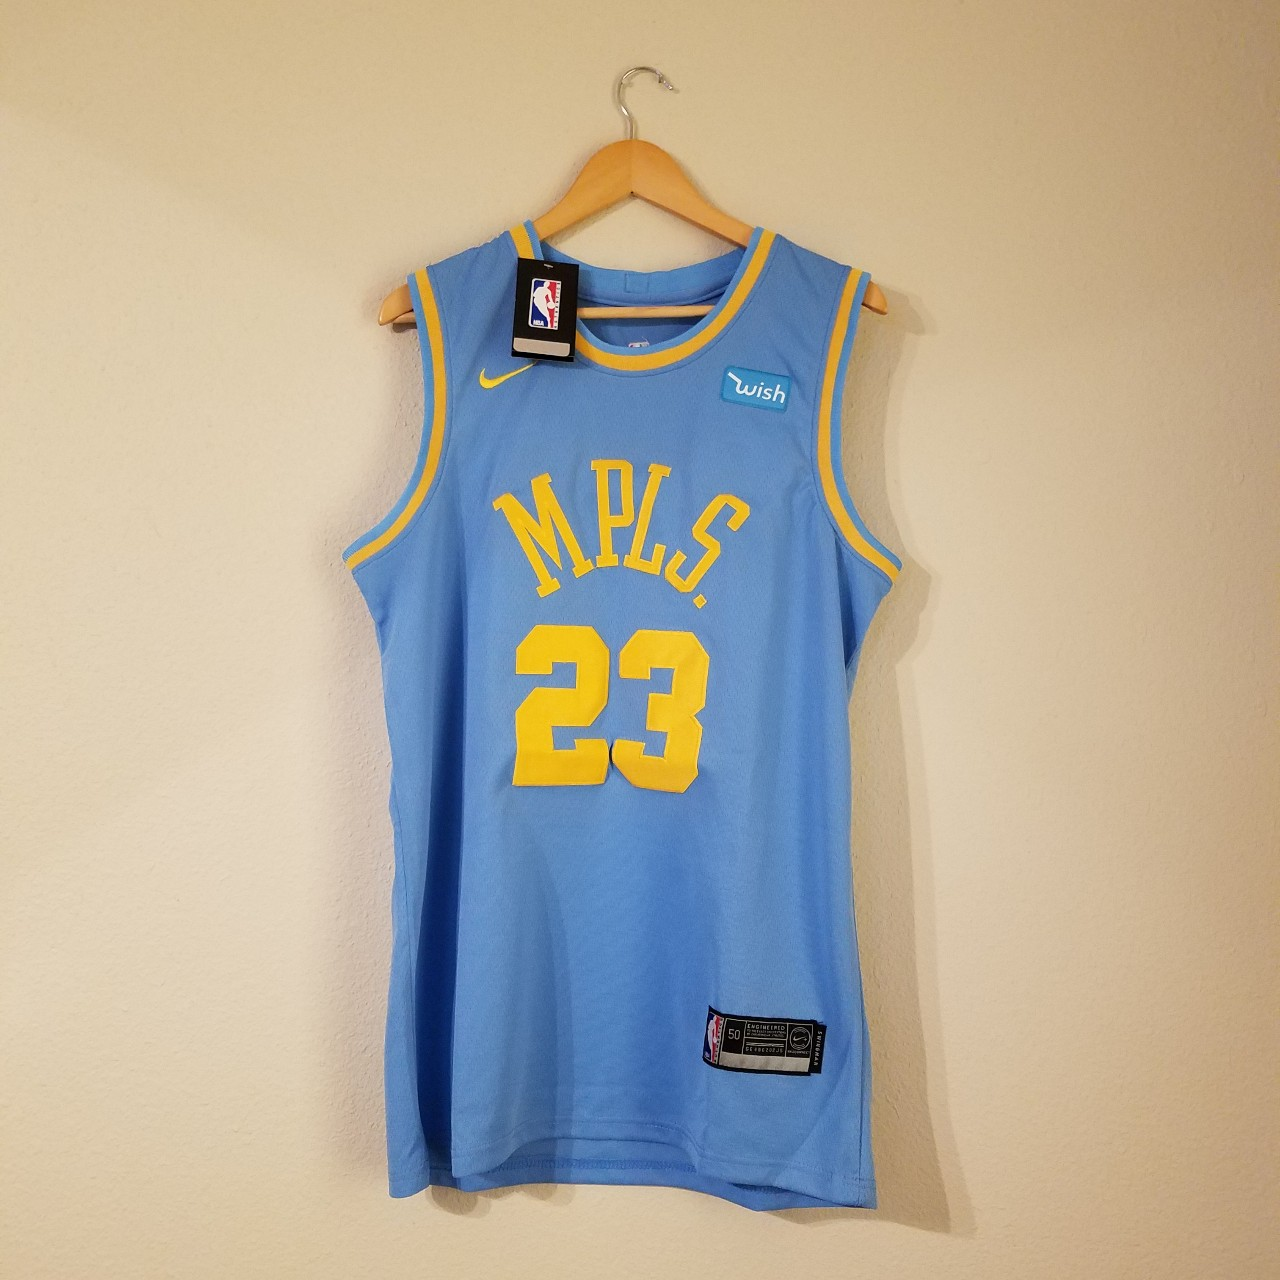 reputable site e9c41 68794 LeBron James MPLS Los Angeles Lakers #23 Throwback ...